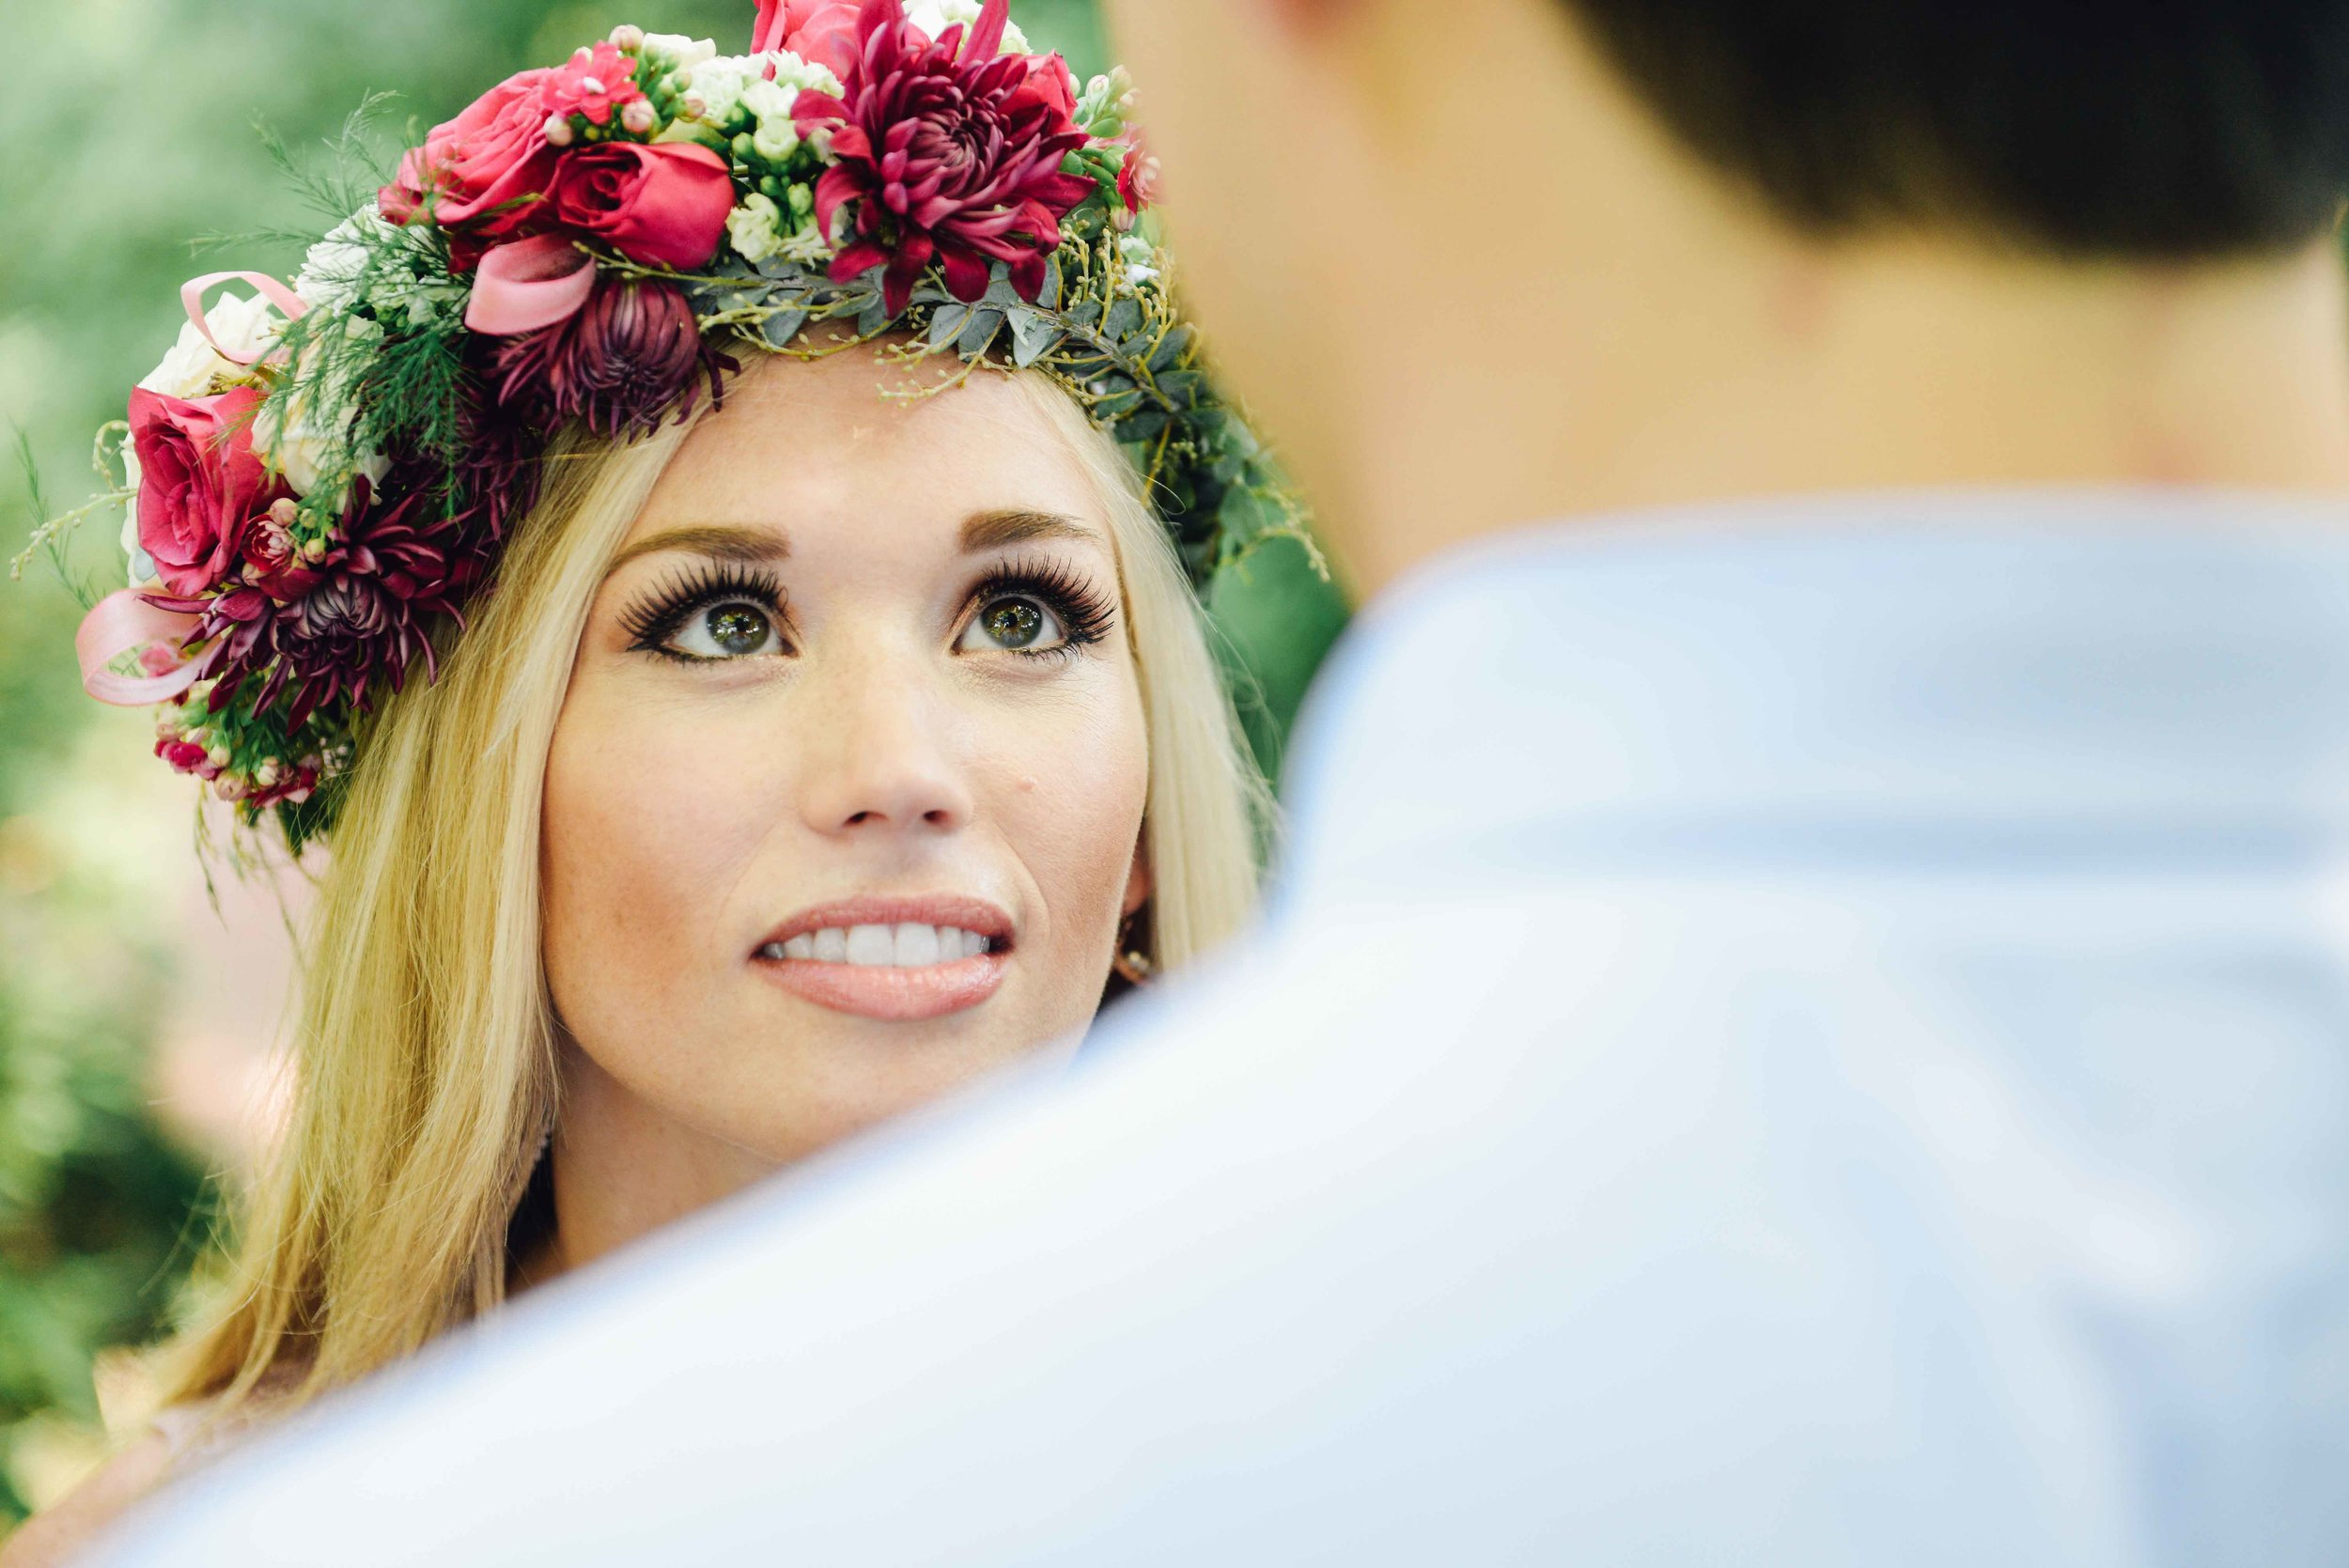 flower crown on girl with fiance